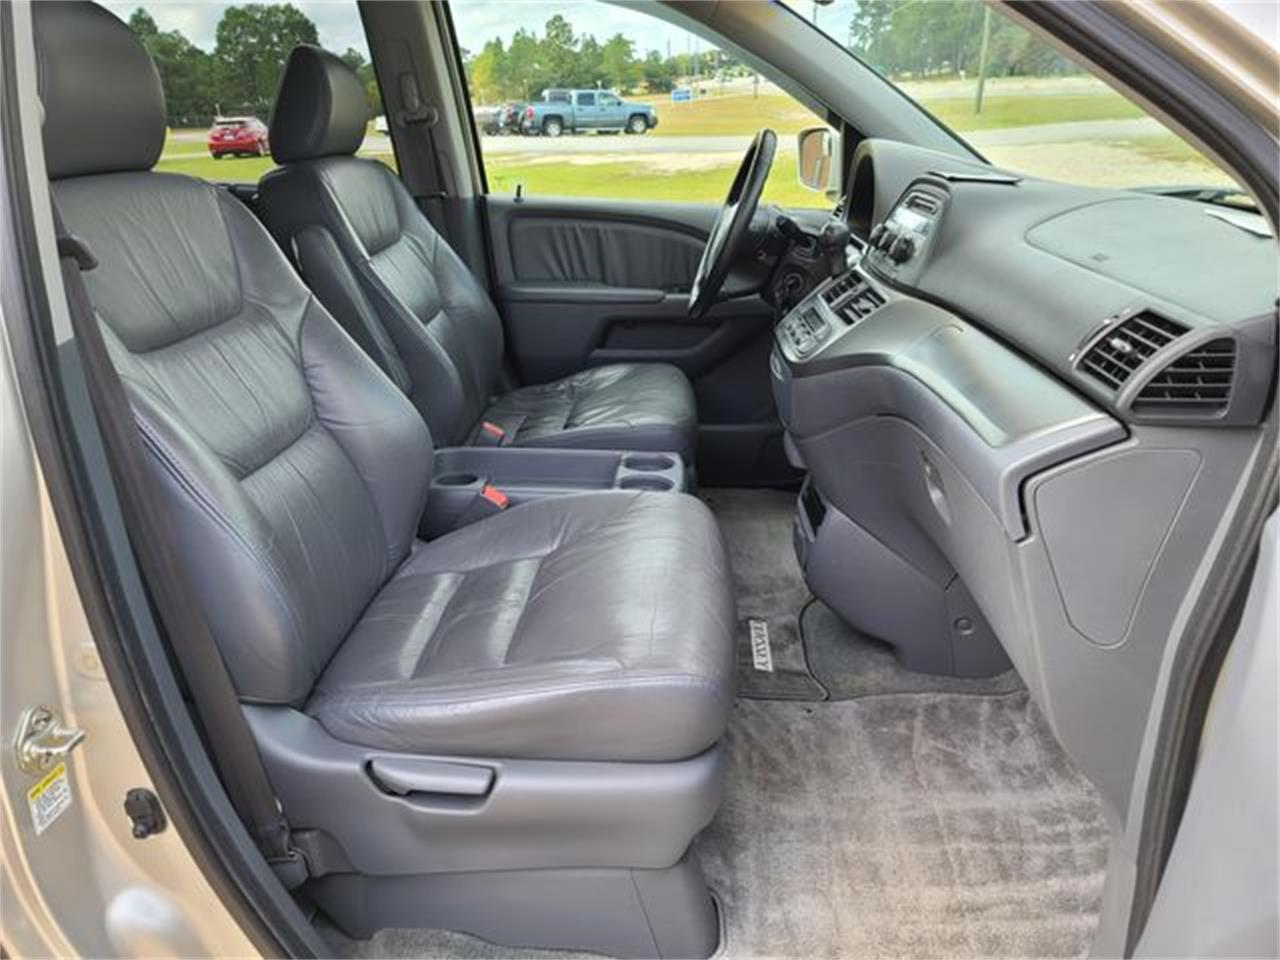 2007 Honda Odyssey (CC-1385288) for sale in Hope Mills, North Carolina